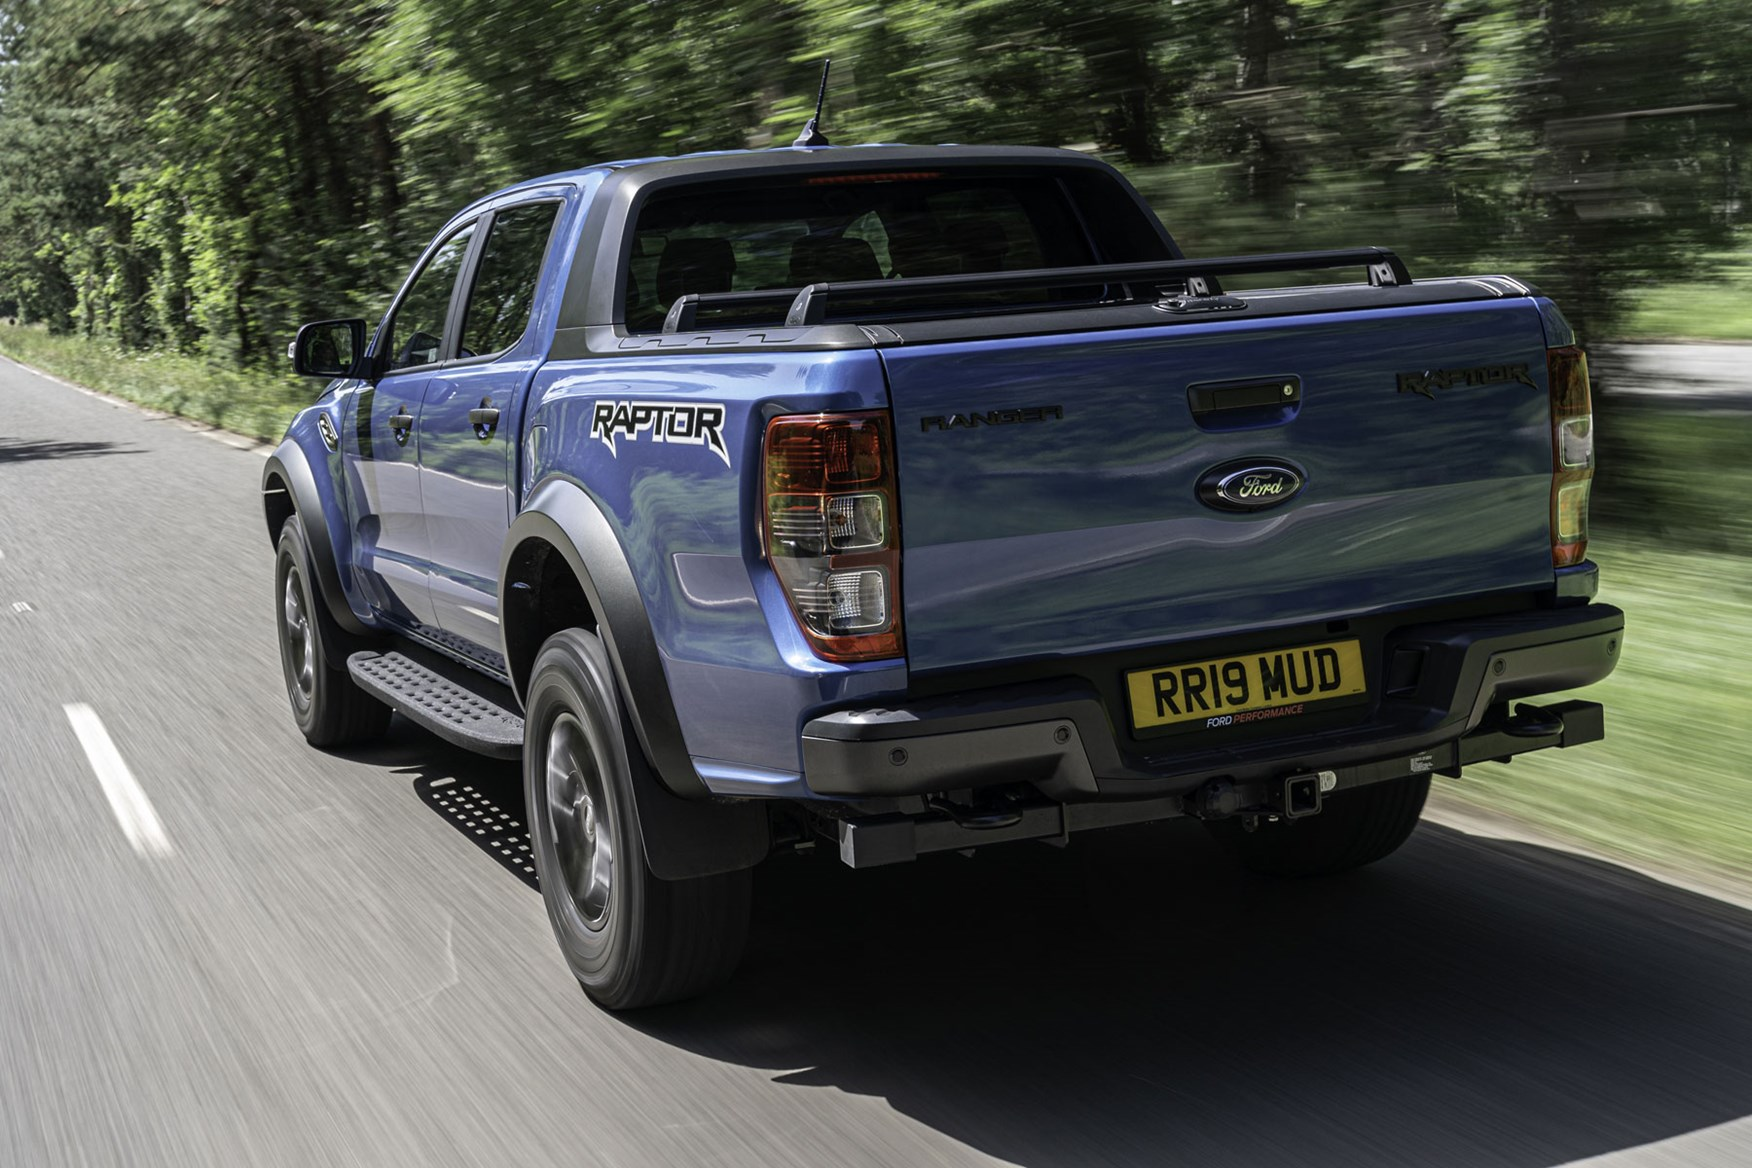 Ford Ranger Raptor review - high-performance off-road pickup tested